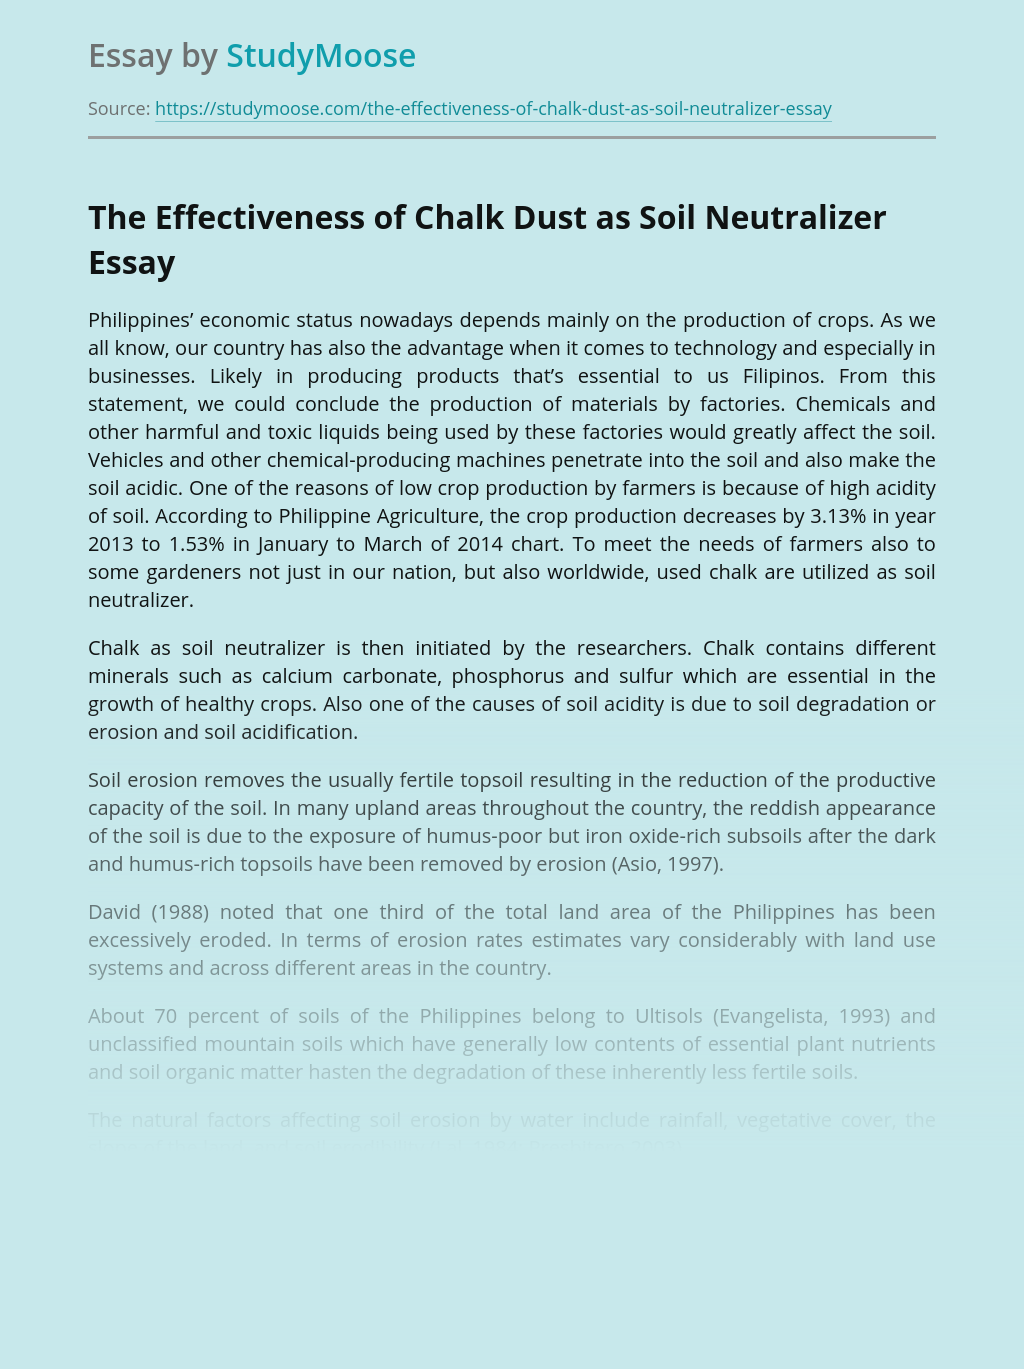 Chalk Dust as Soil Neutralizer in Agriculture